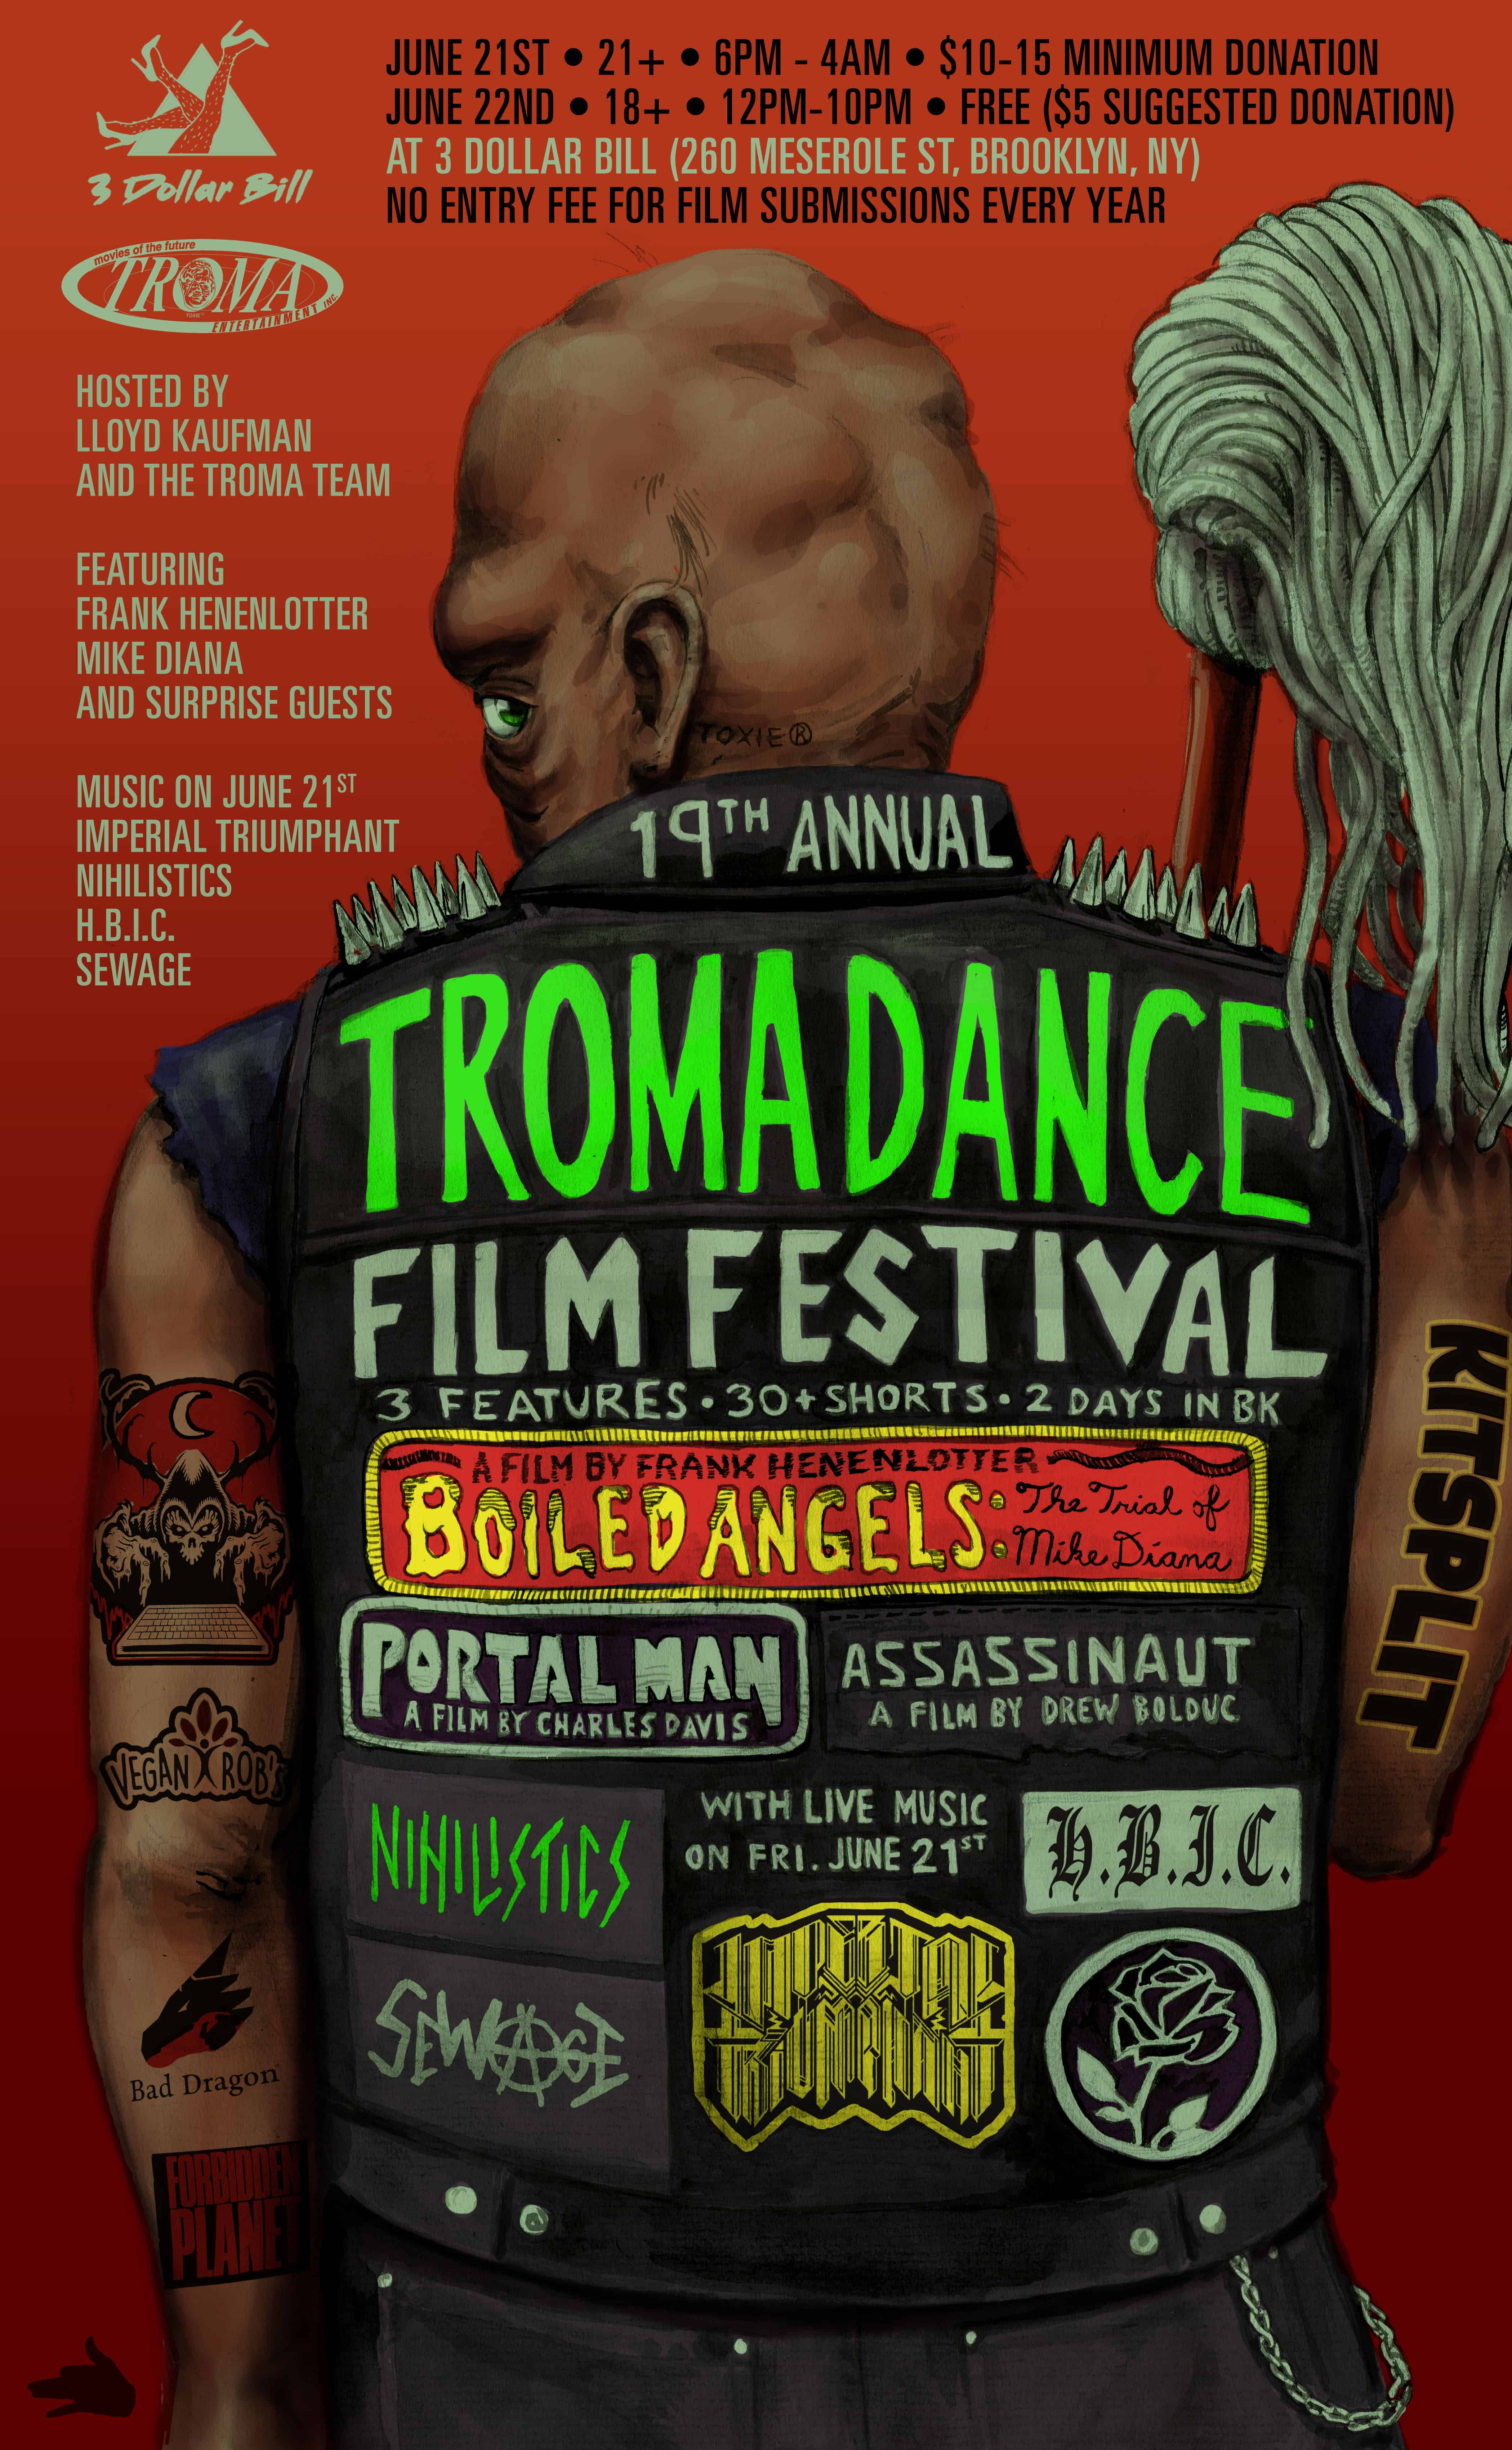 Tromadance Film Festivalv2 - The 19th Annual Tromadance Film Festival is Almost Upon Us